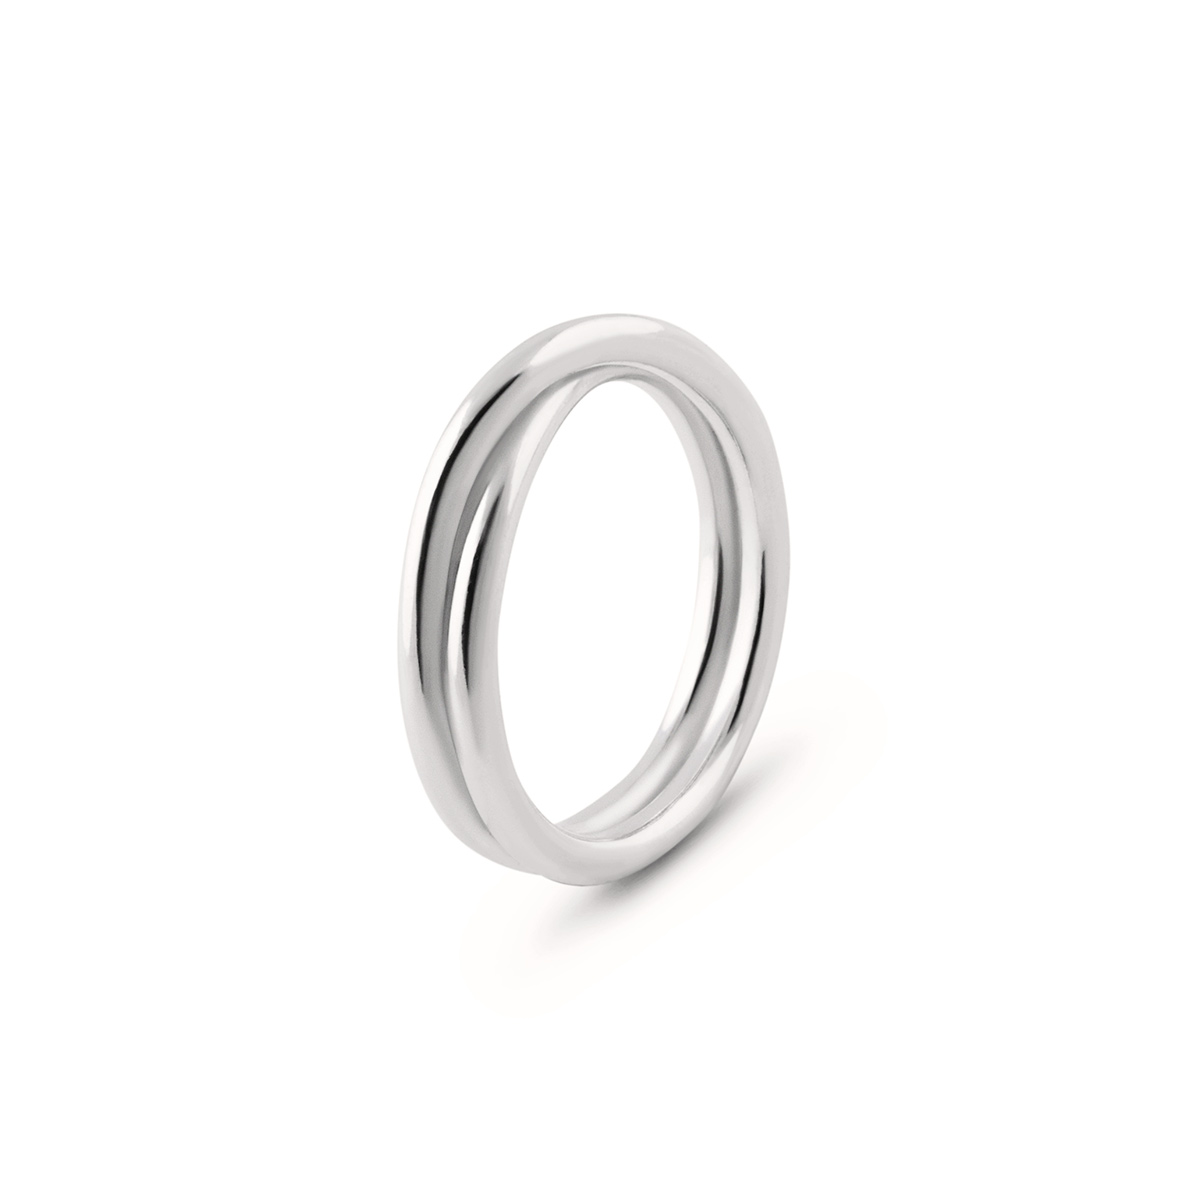 Isabel Lennse – Over Silver Ring, 3 mm